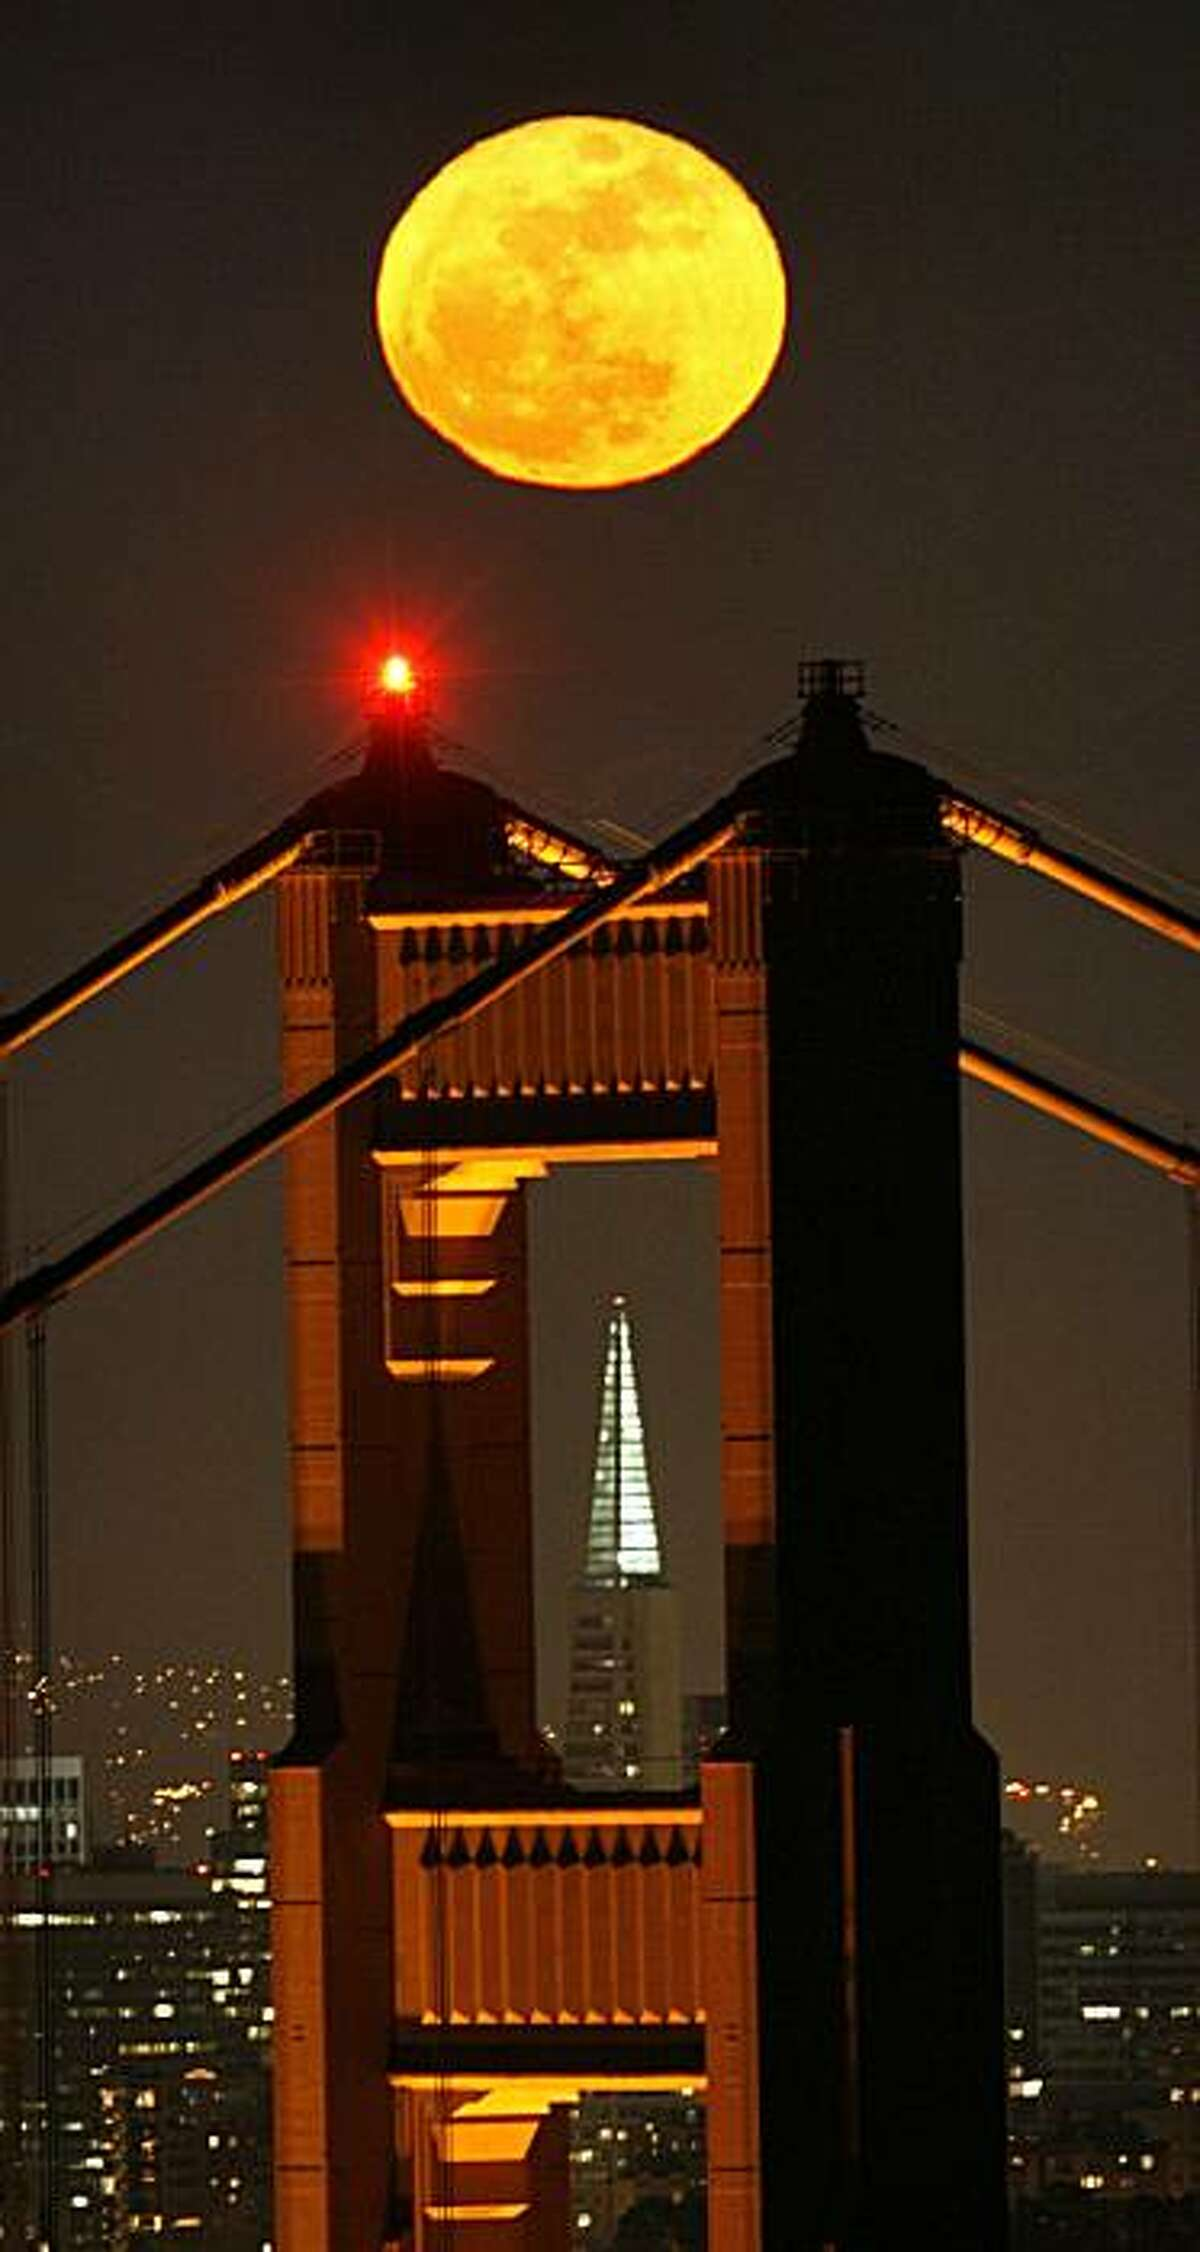 A full moon rose over the Golden Gate Bridge April 20, 2008 as it the bridges north tower framed the Transamerican Pyramid of the city skyline. 4/20/08 Photo by Frederic Larson / San Francisco Chronicle